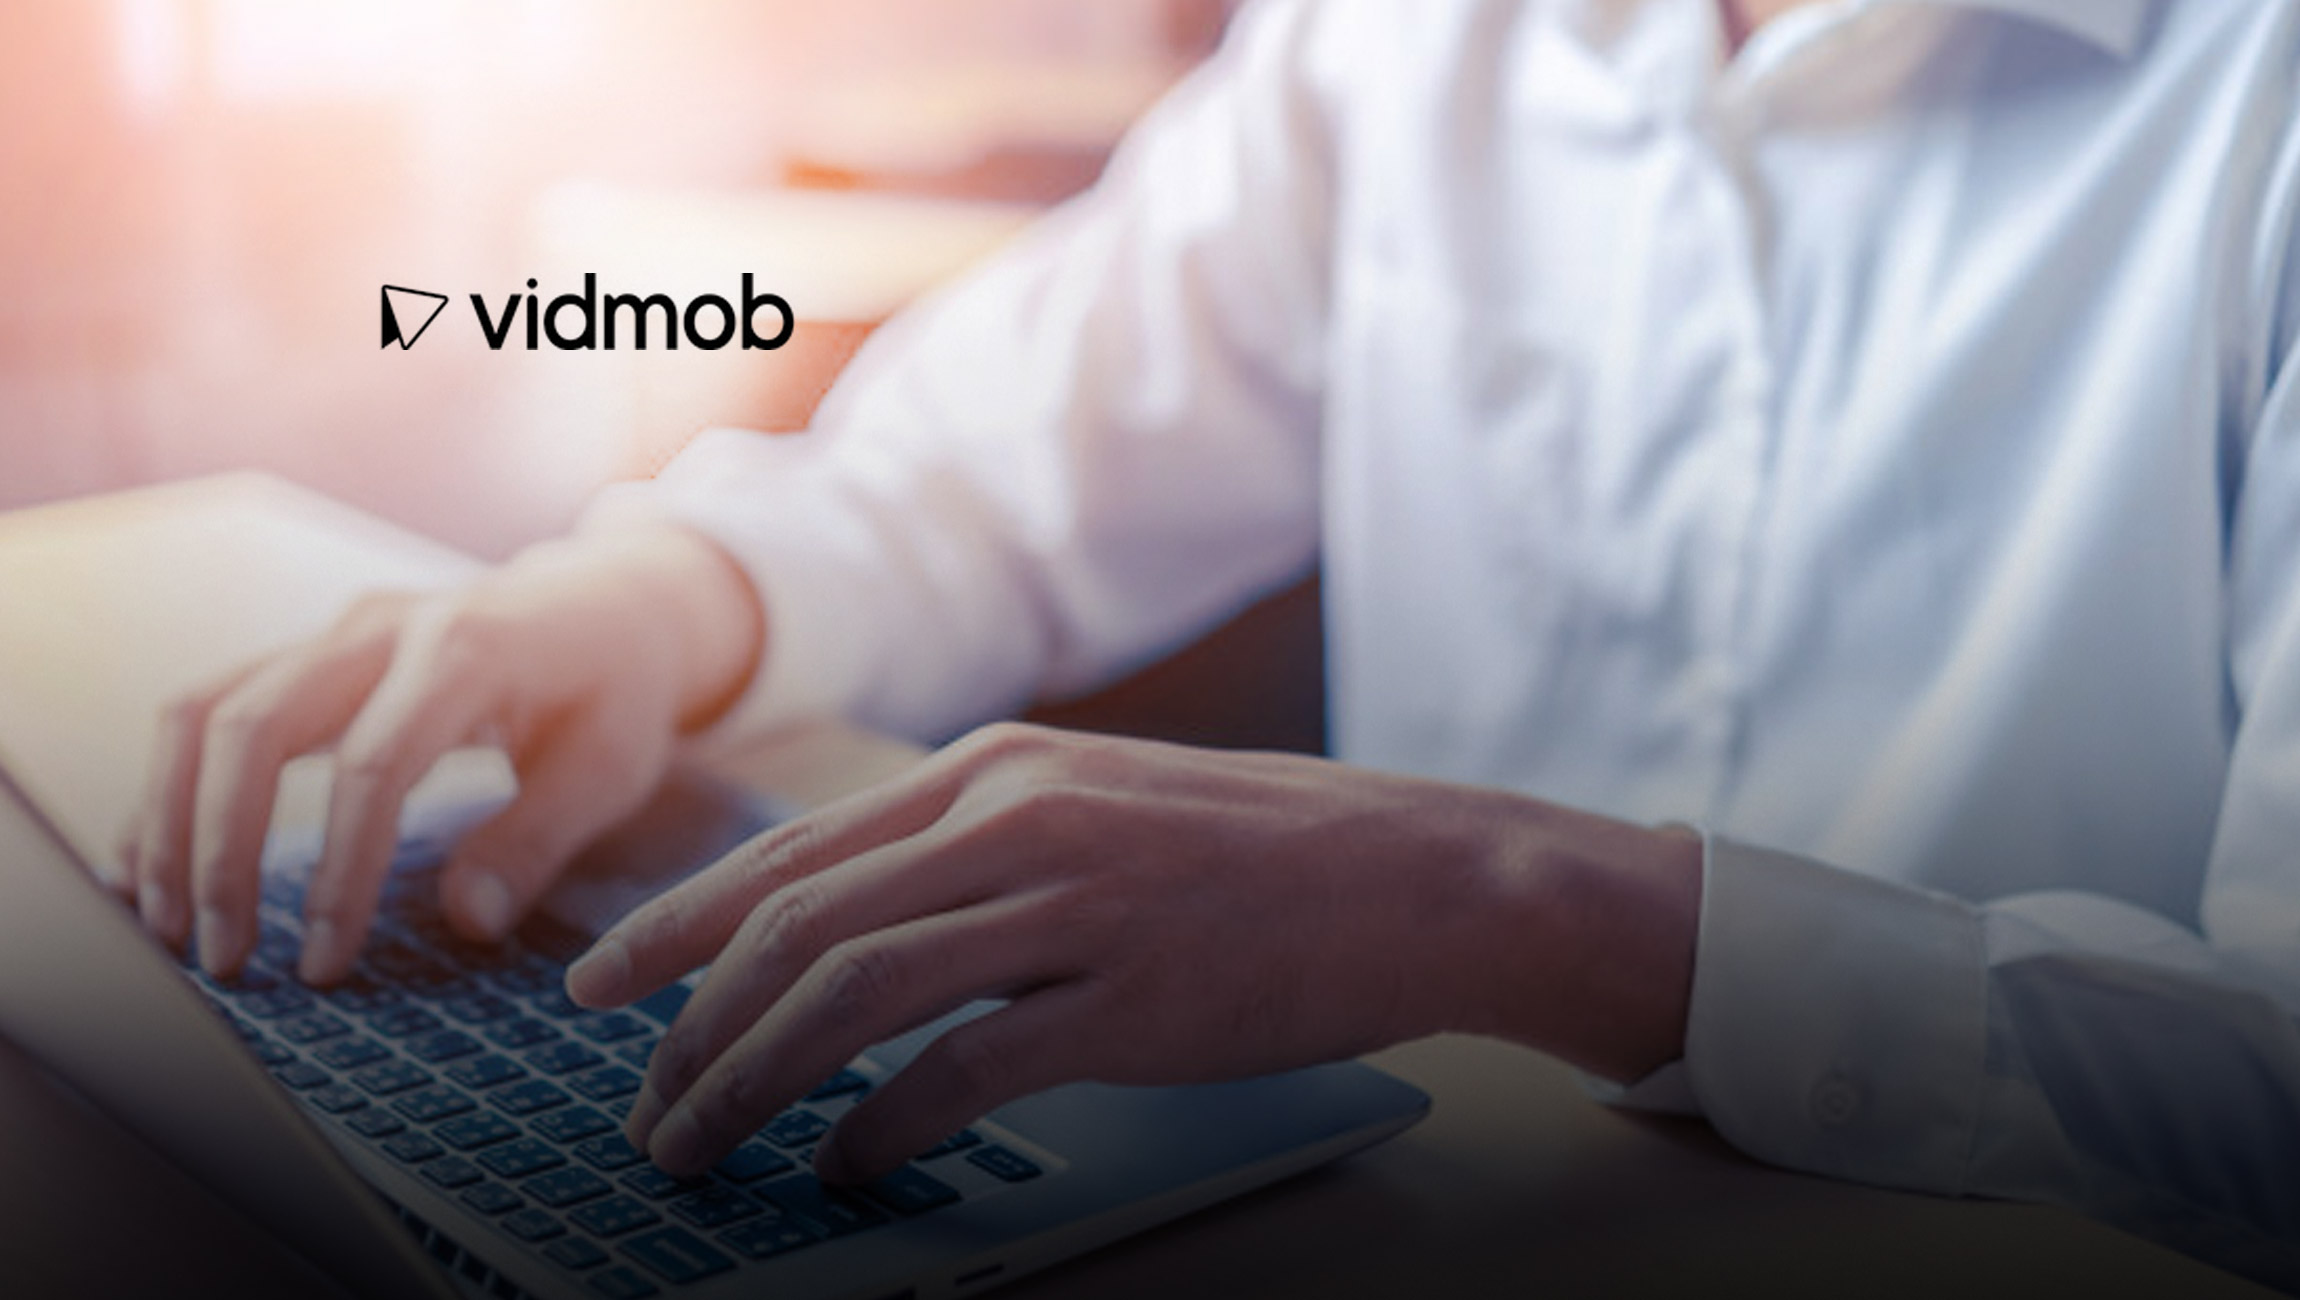 VidMob Announces Successful Completion Of Type 2 SOC 2 Examination